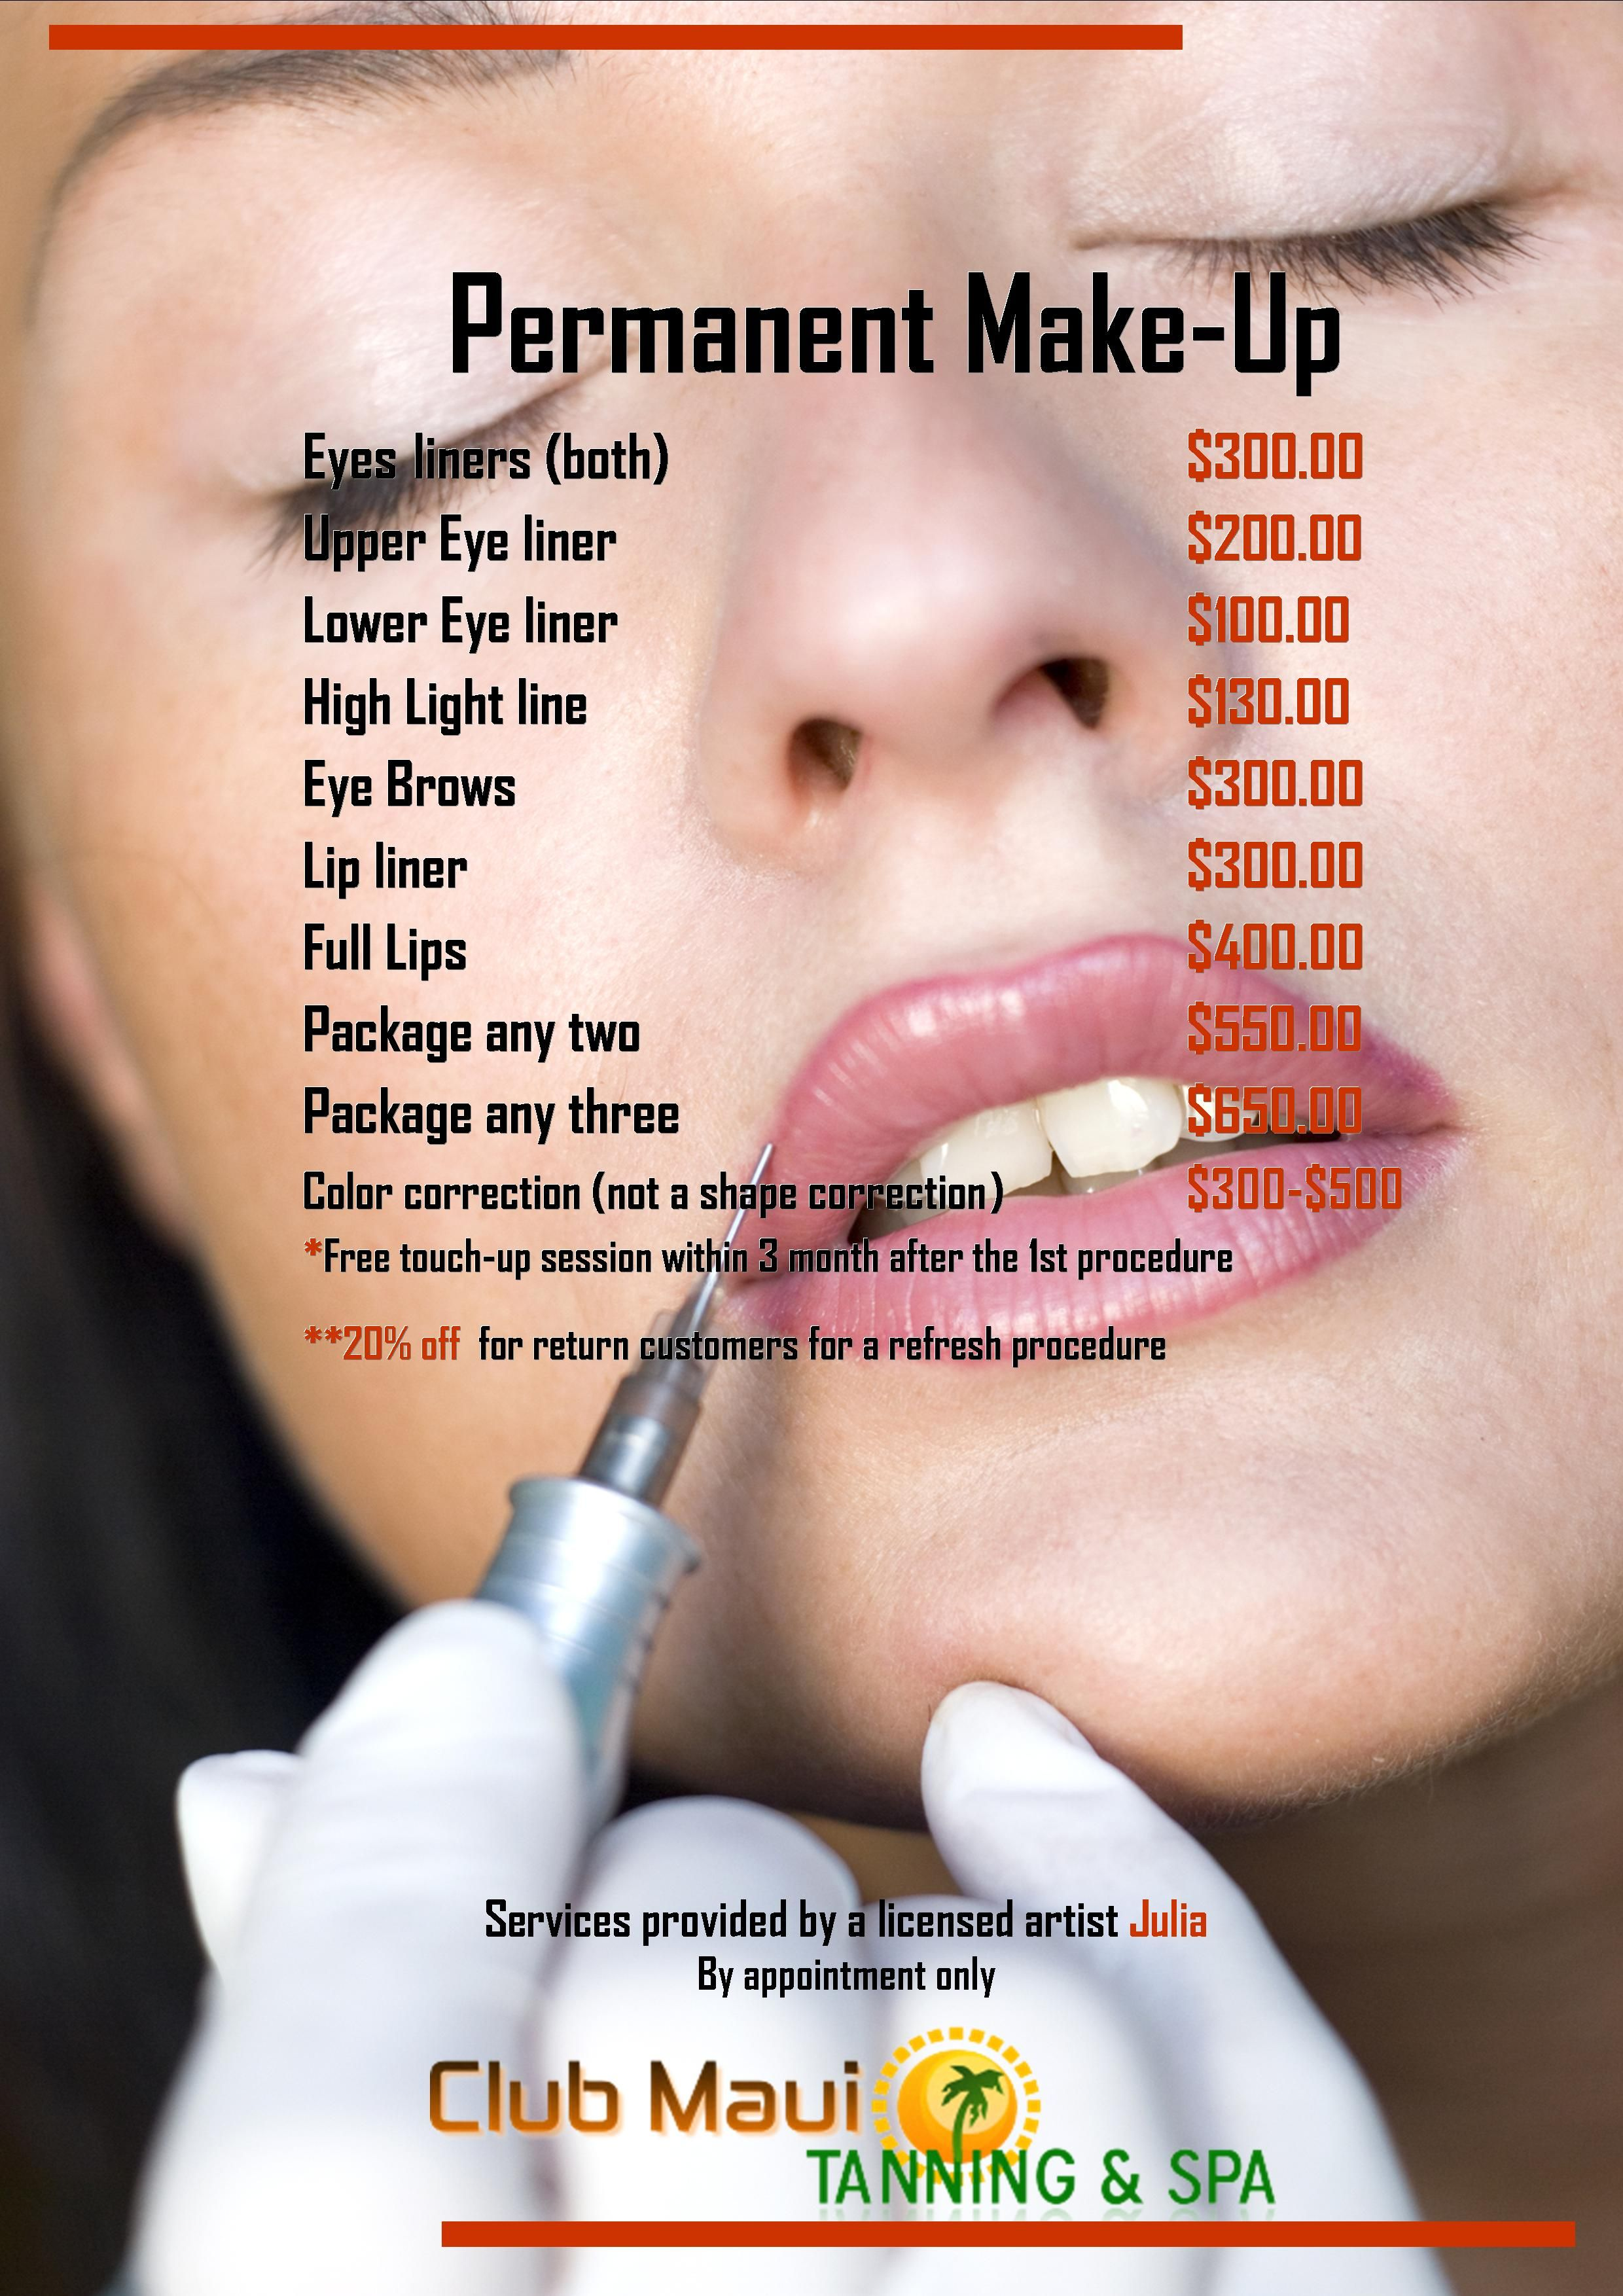 Club Maui Tanning Spa Permanent Makeup Price List Permanent